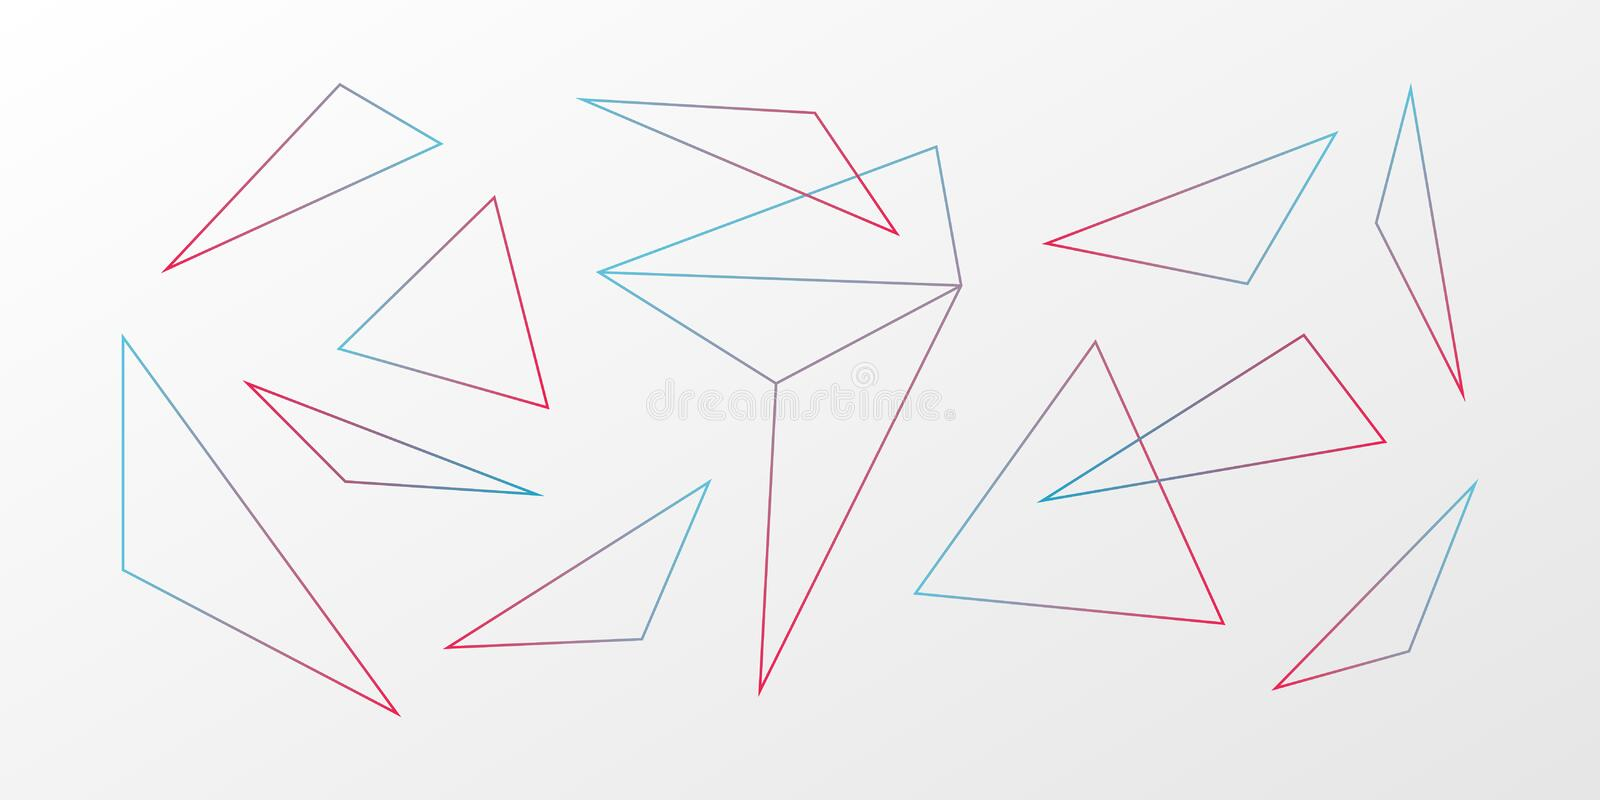 Abstract vector background. Gradient triangle geometric pattern. Blue red white ilustration for web, futuristic design stock illustration